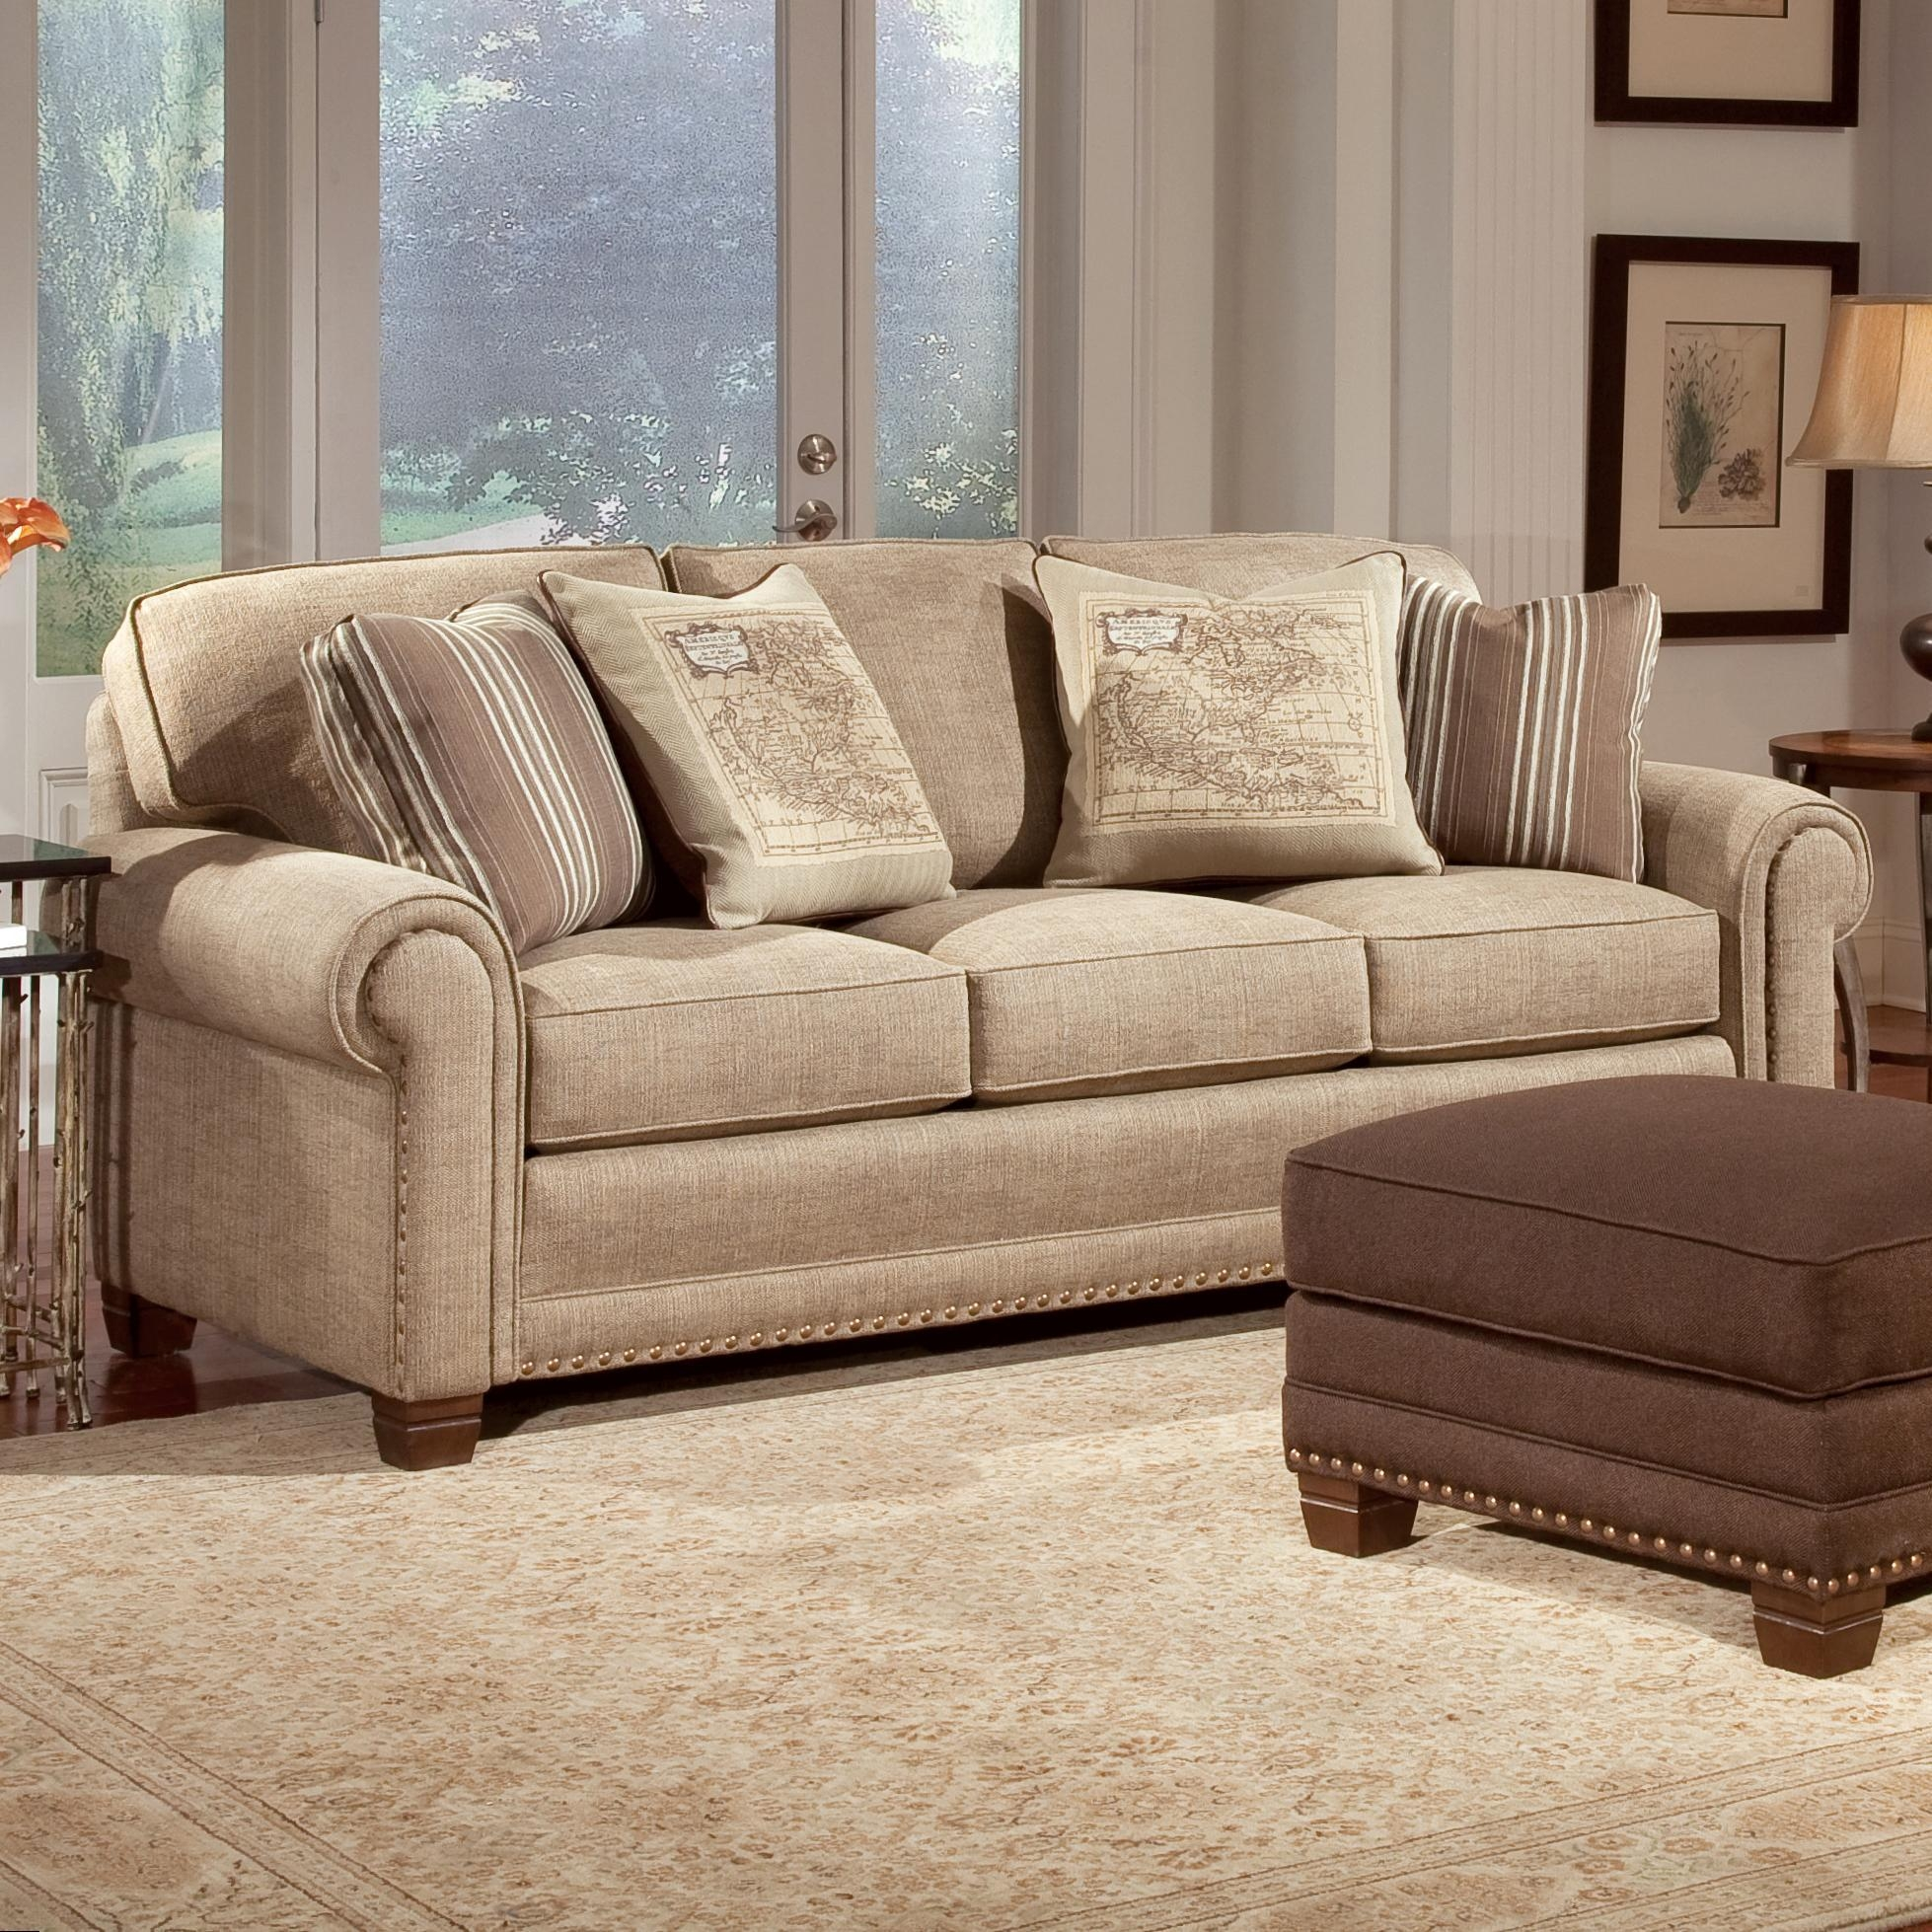 Sofa Maryland Home Design Furniture Decorating Amazing Simple With Within Sofa Maryland (View 9 of 20)